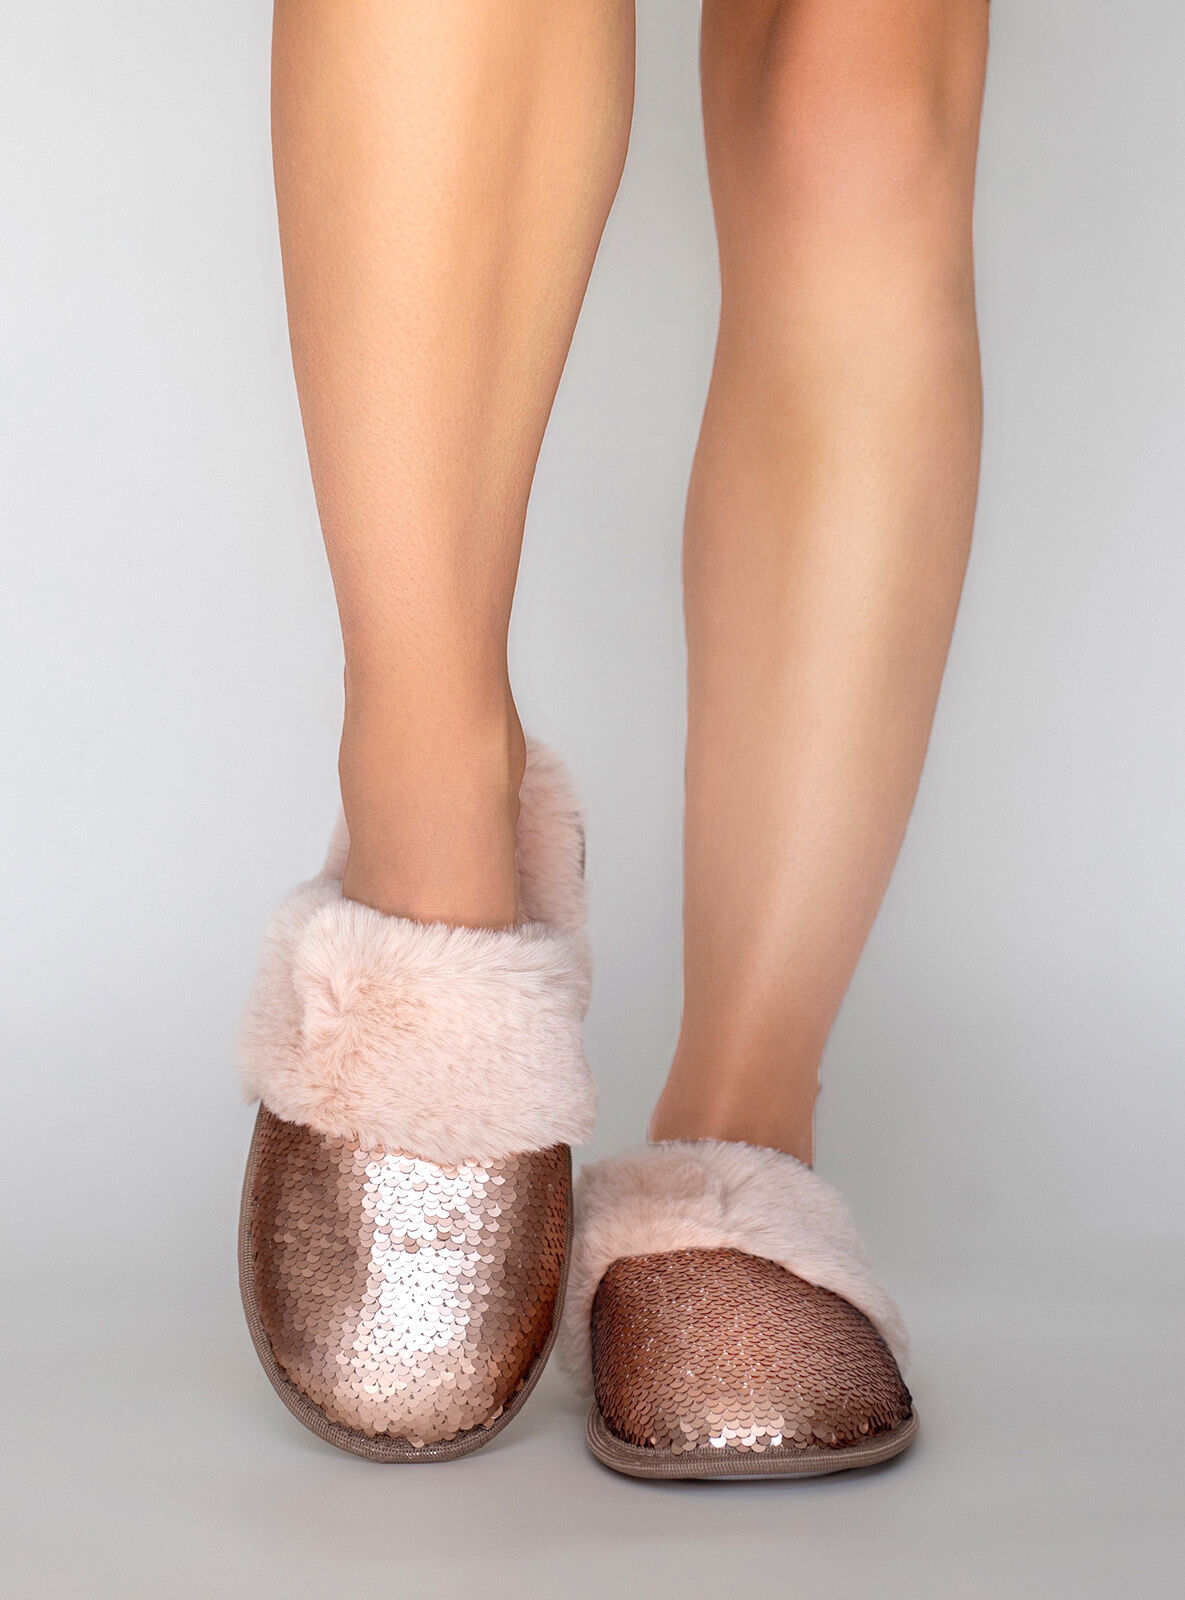 Sequin slippers   Rose Gold   Boux